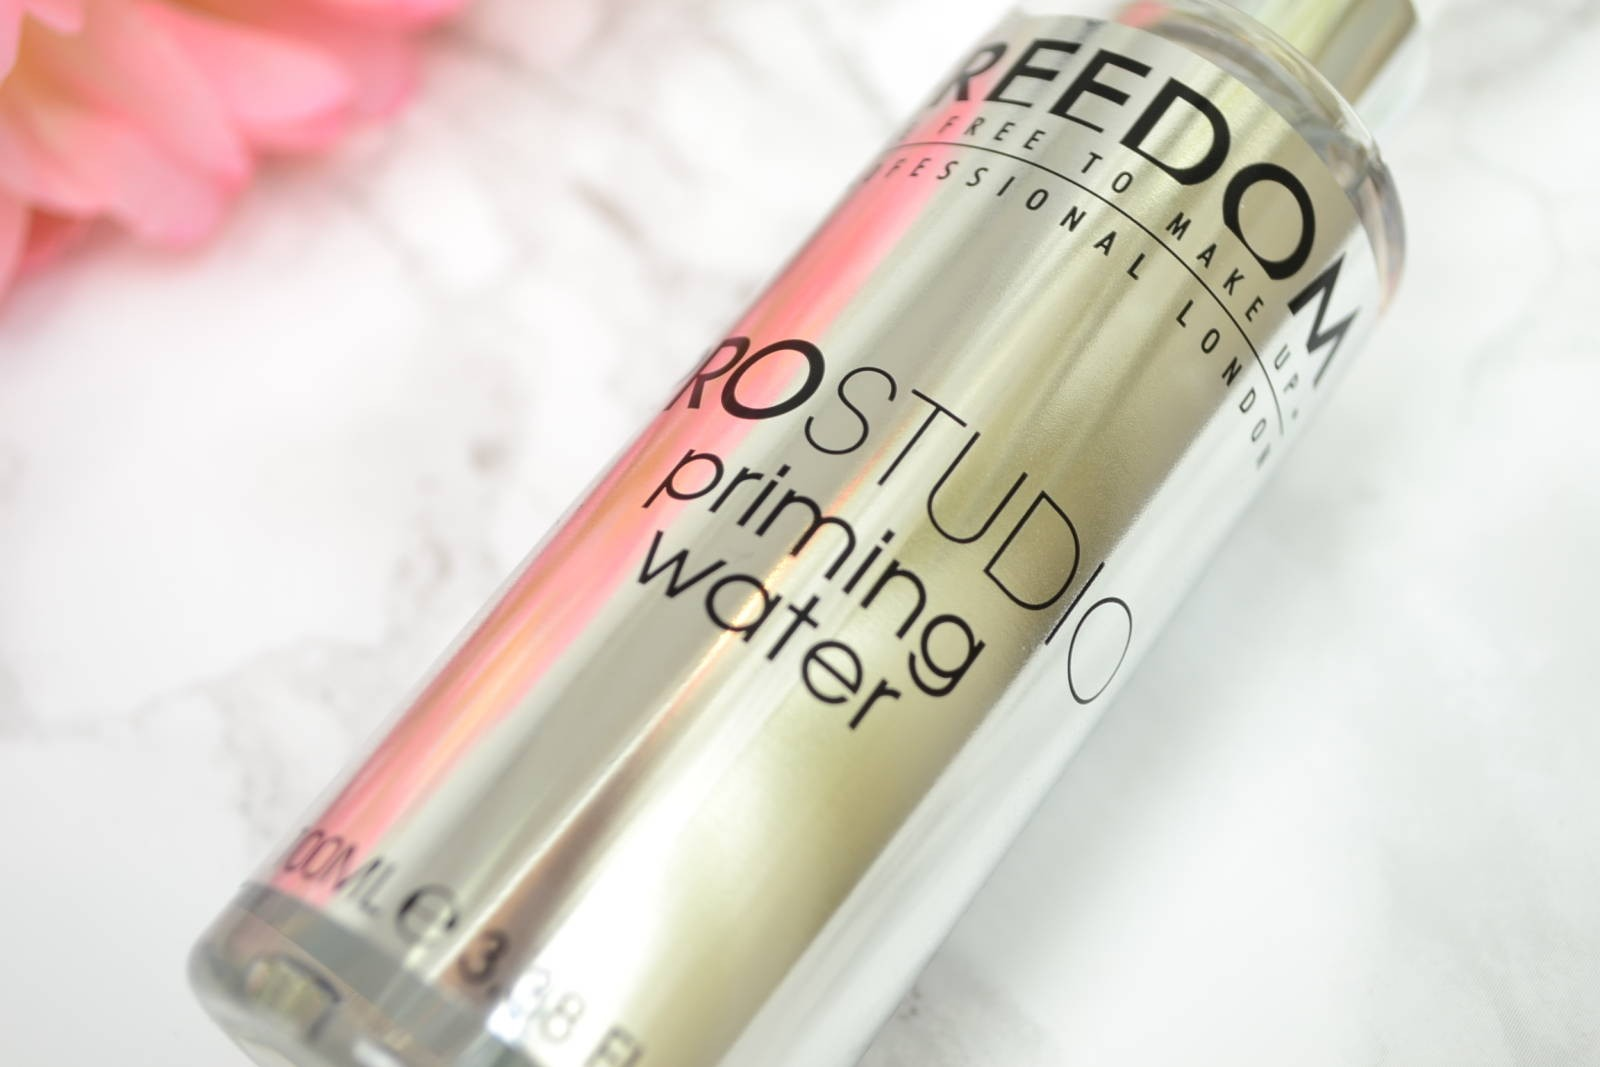 freedom-pro-studio-priming-water-review